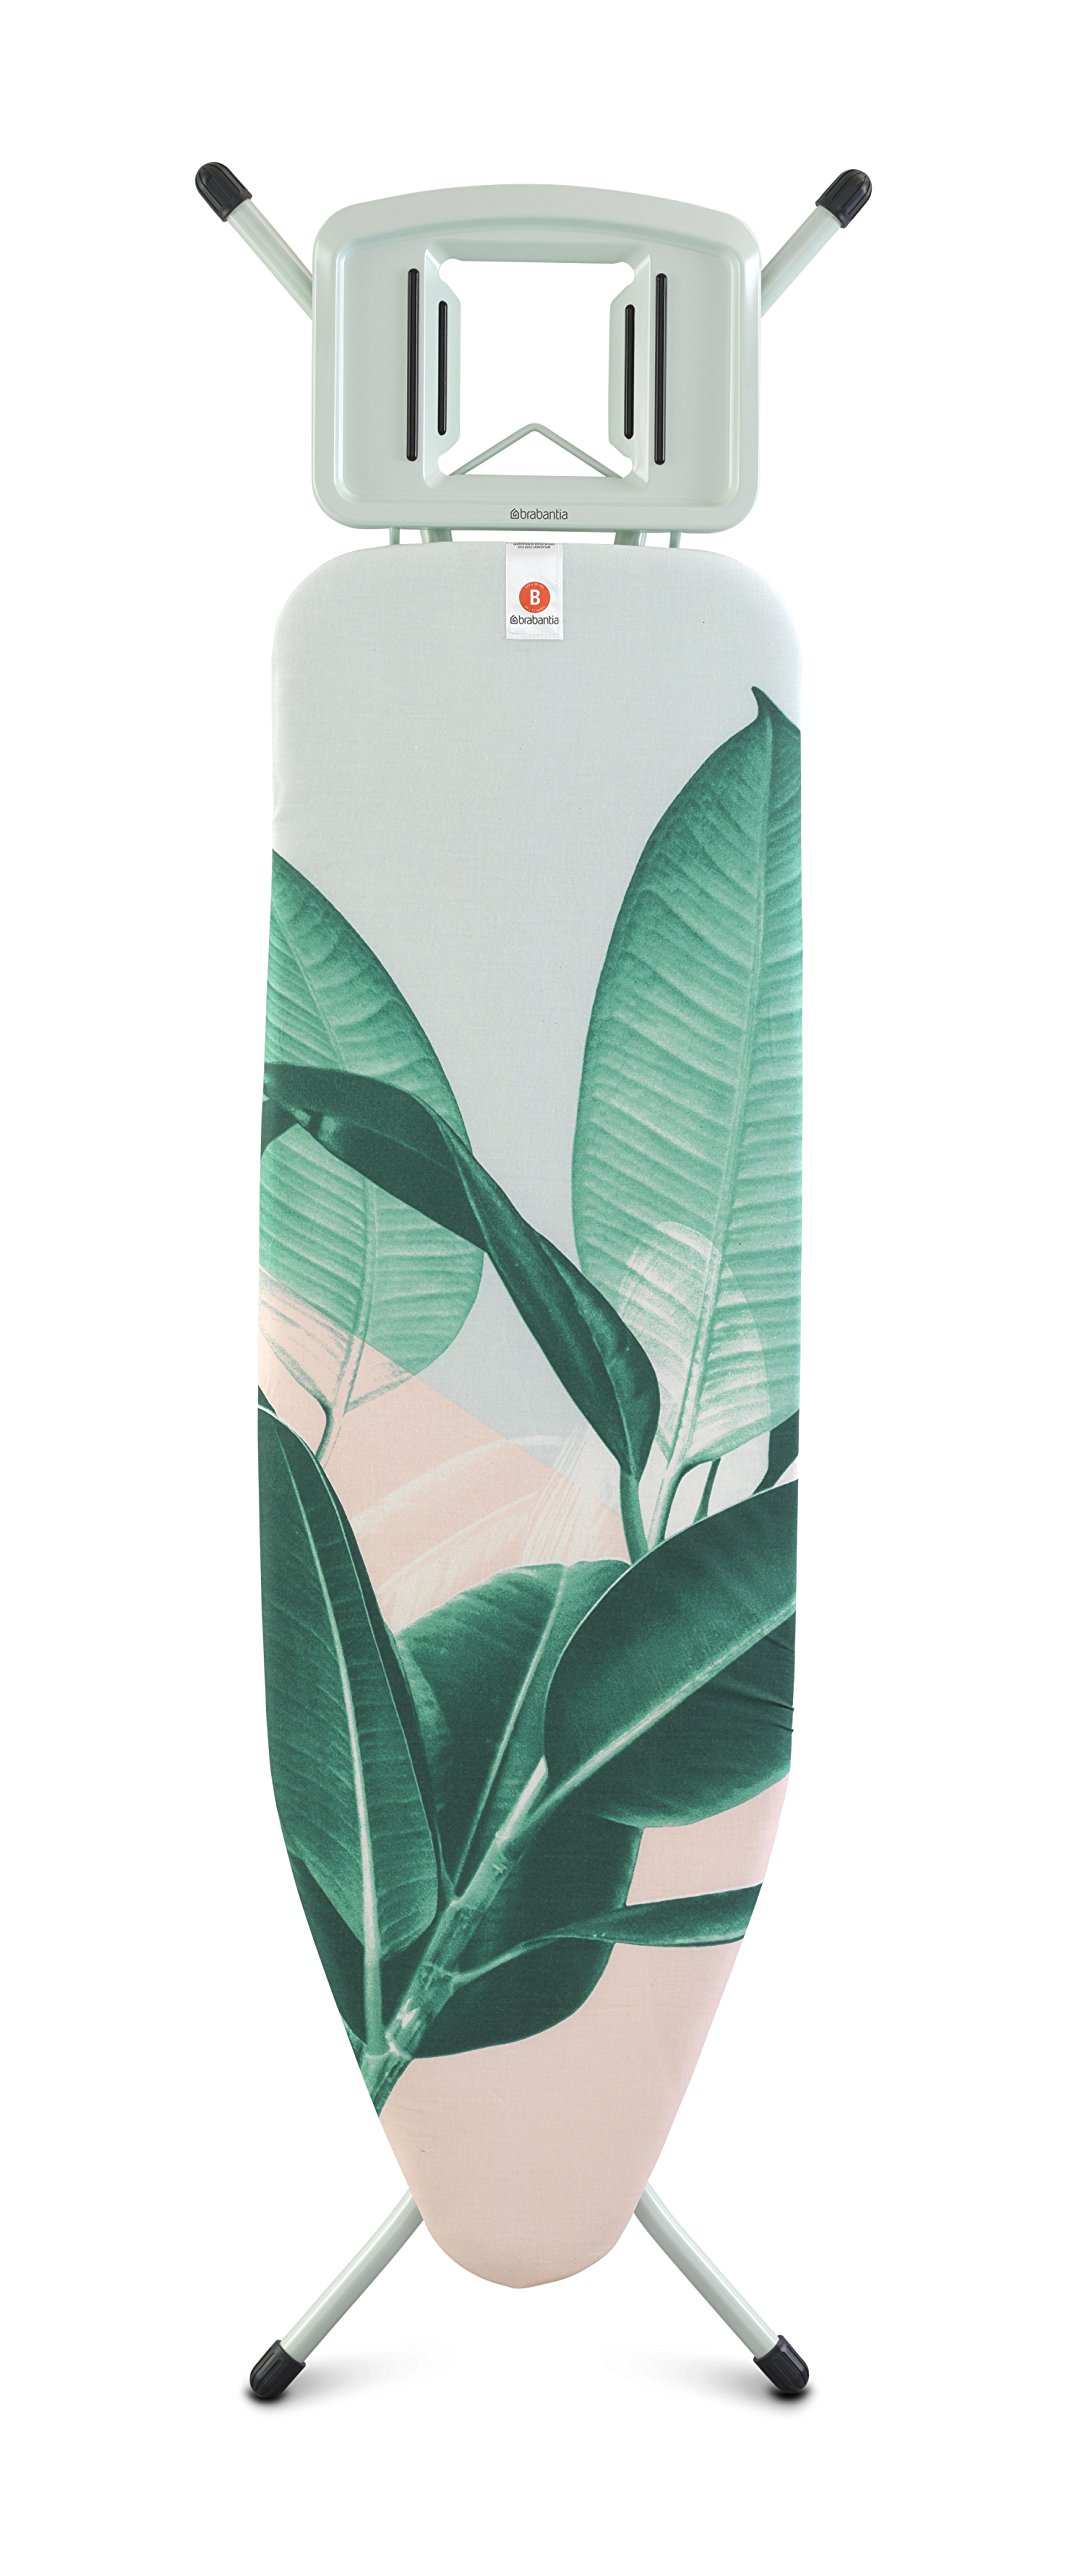 Brabantia Board, Solid Steam Iron Rest, Size B Tropical Leaves